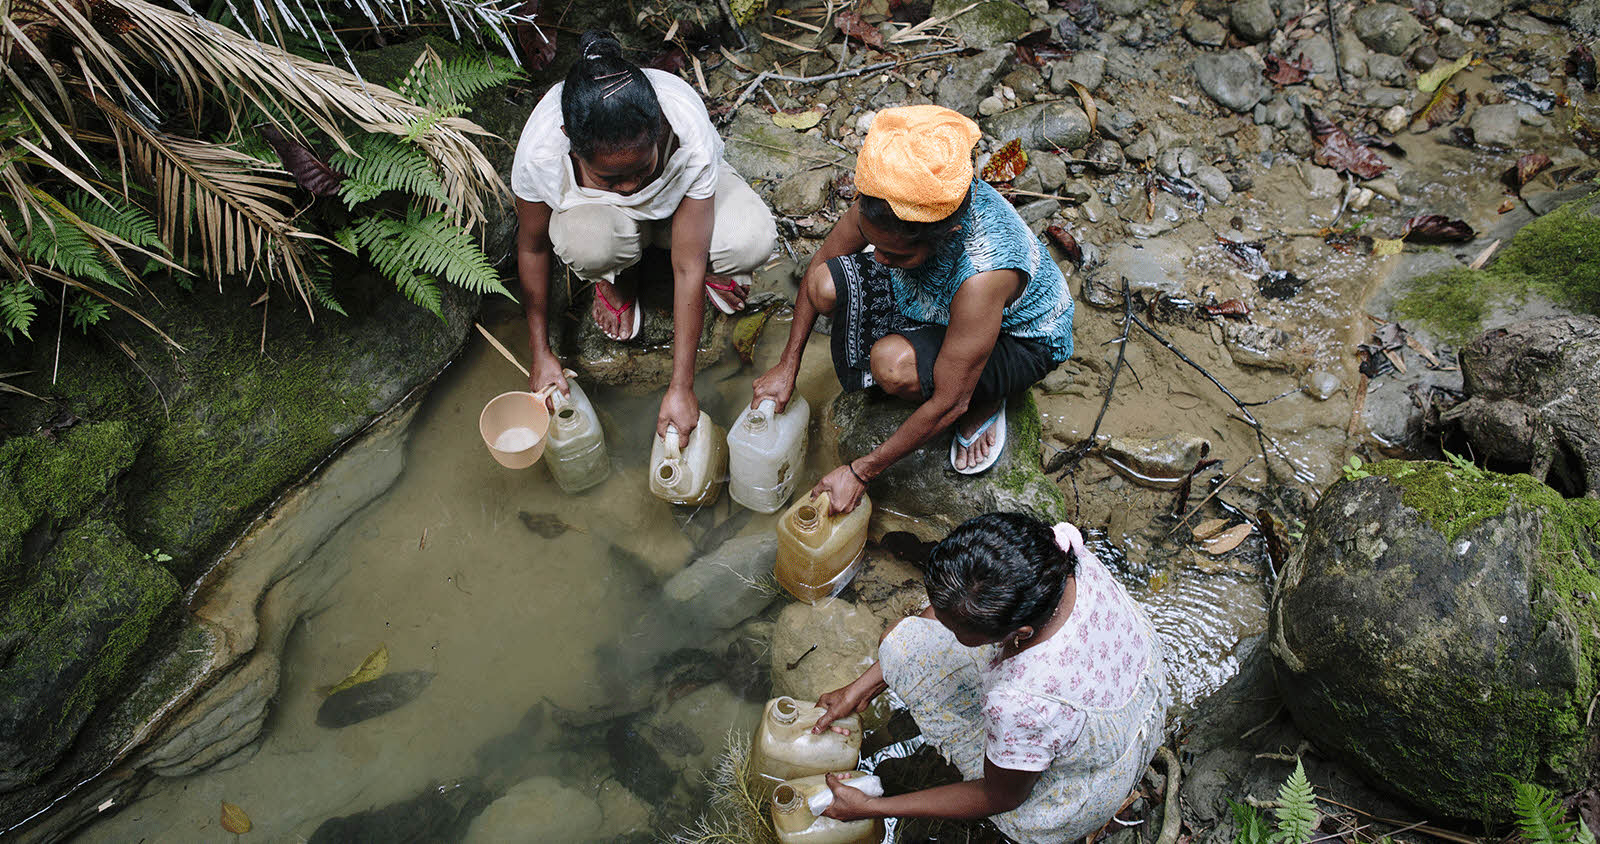 Group of women filling water jugs